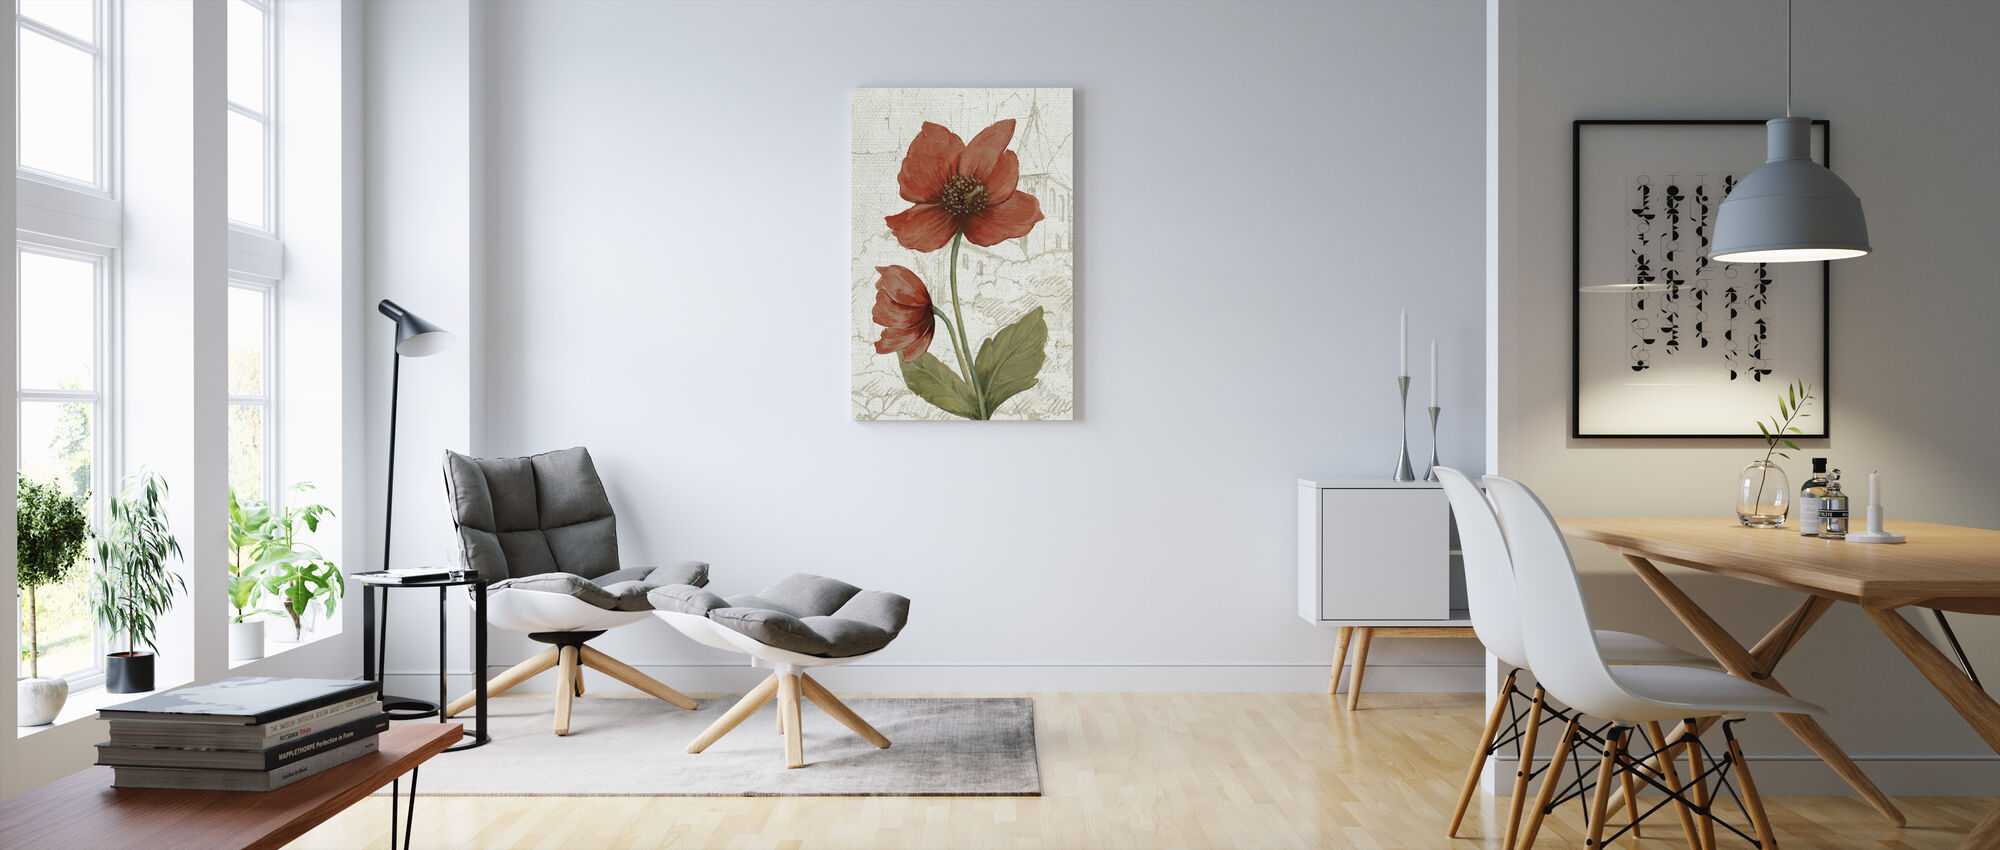 Royal Garden V - Canvas print - Living Room